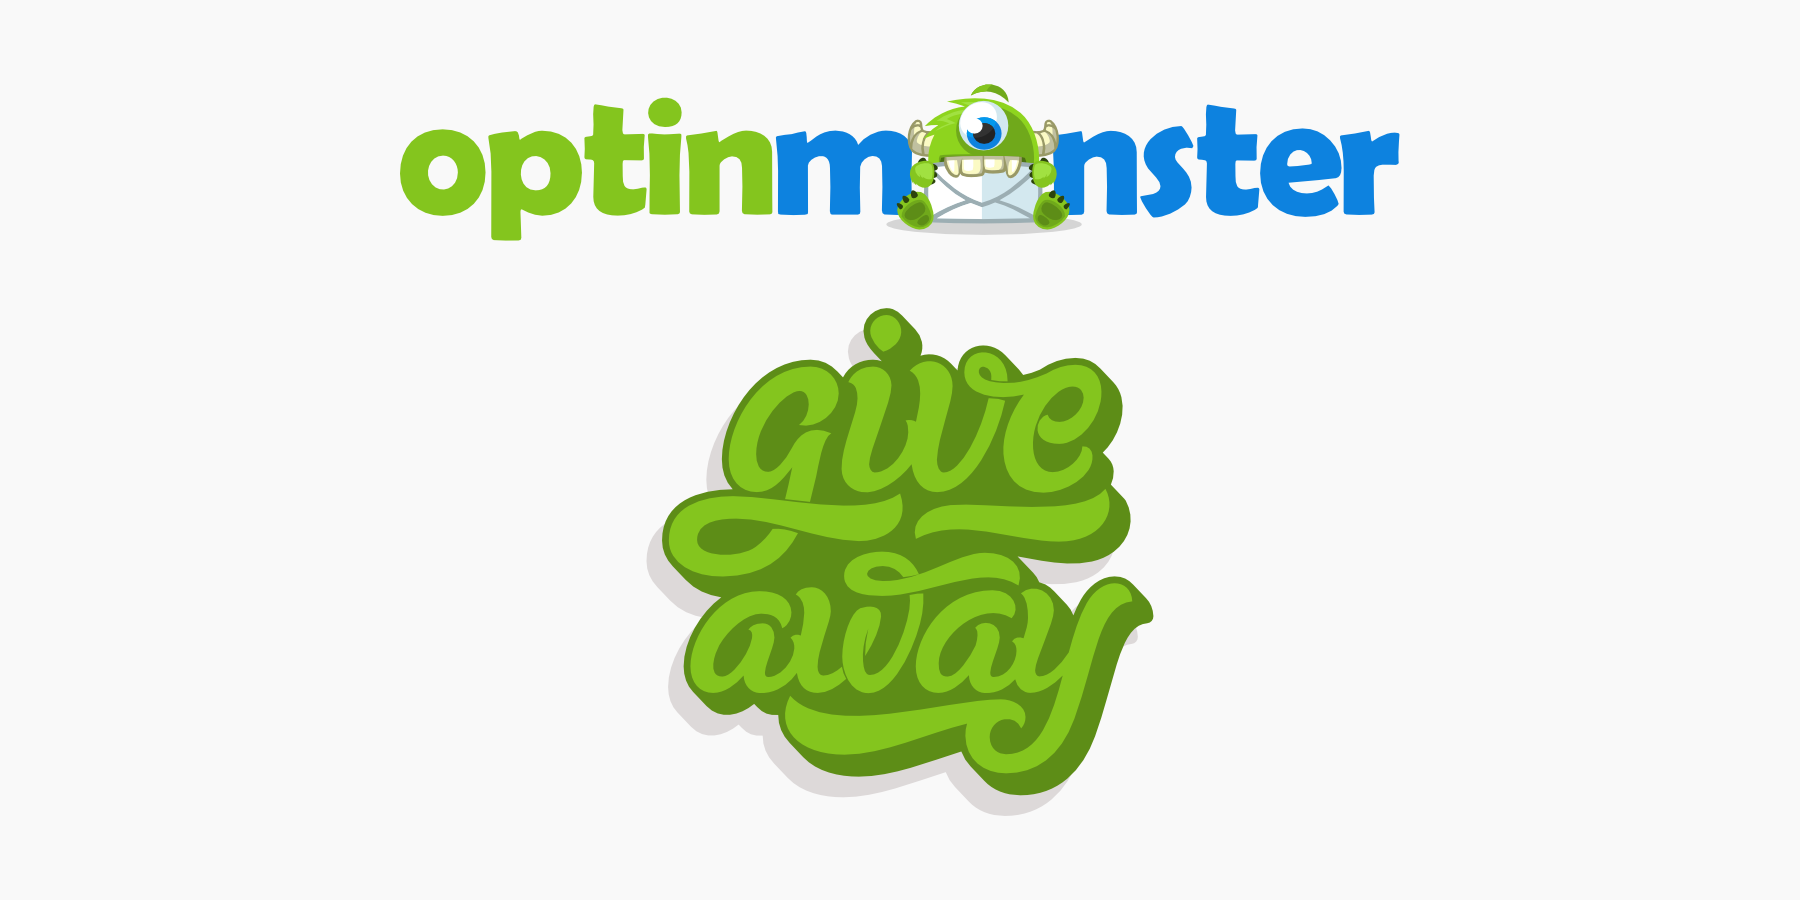 The Big OptinMonster Giveaway